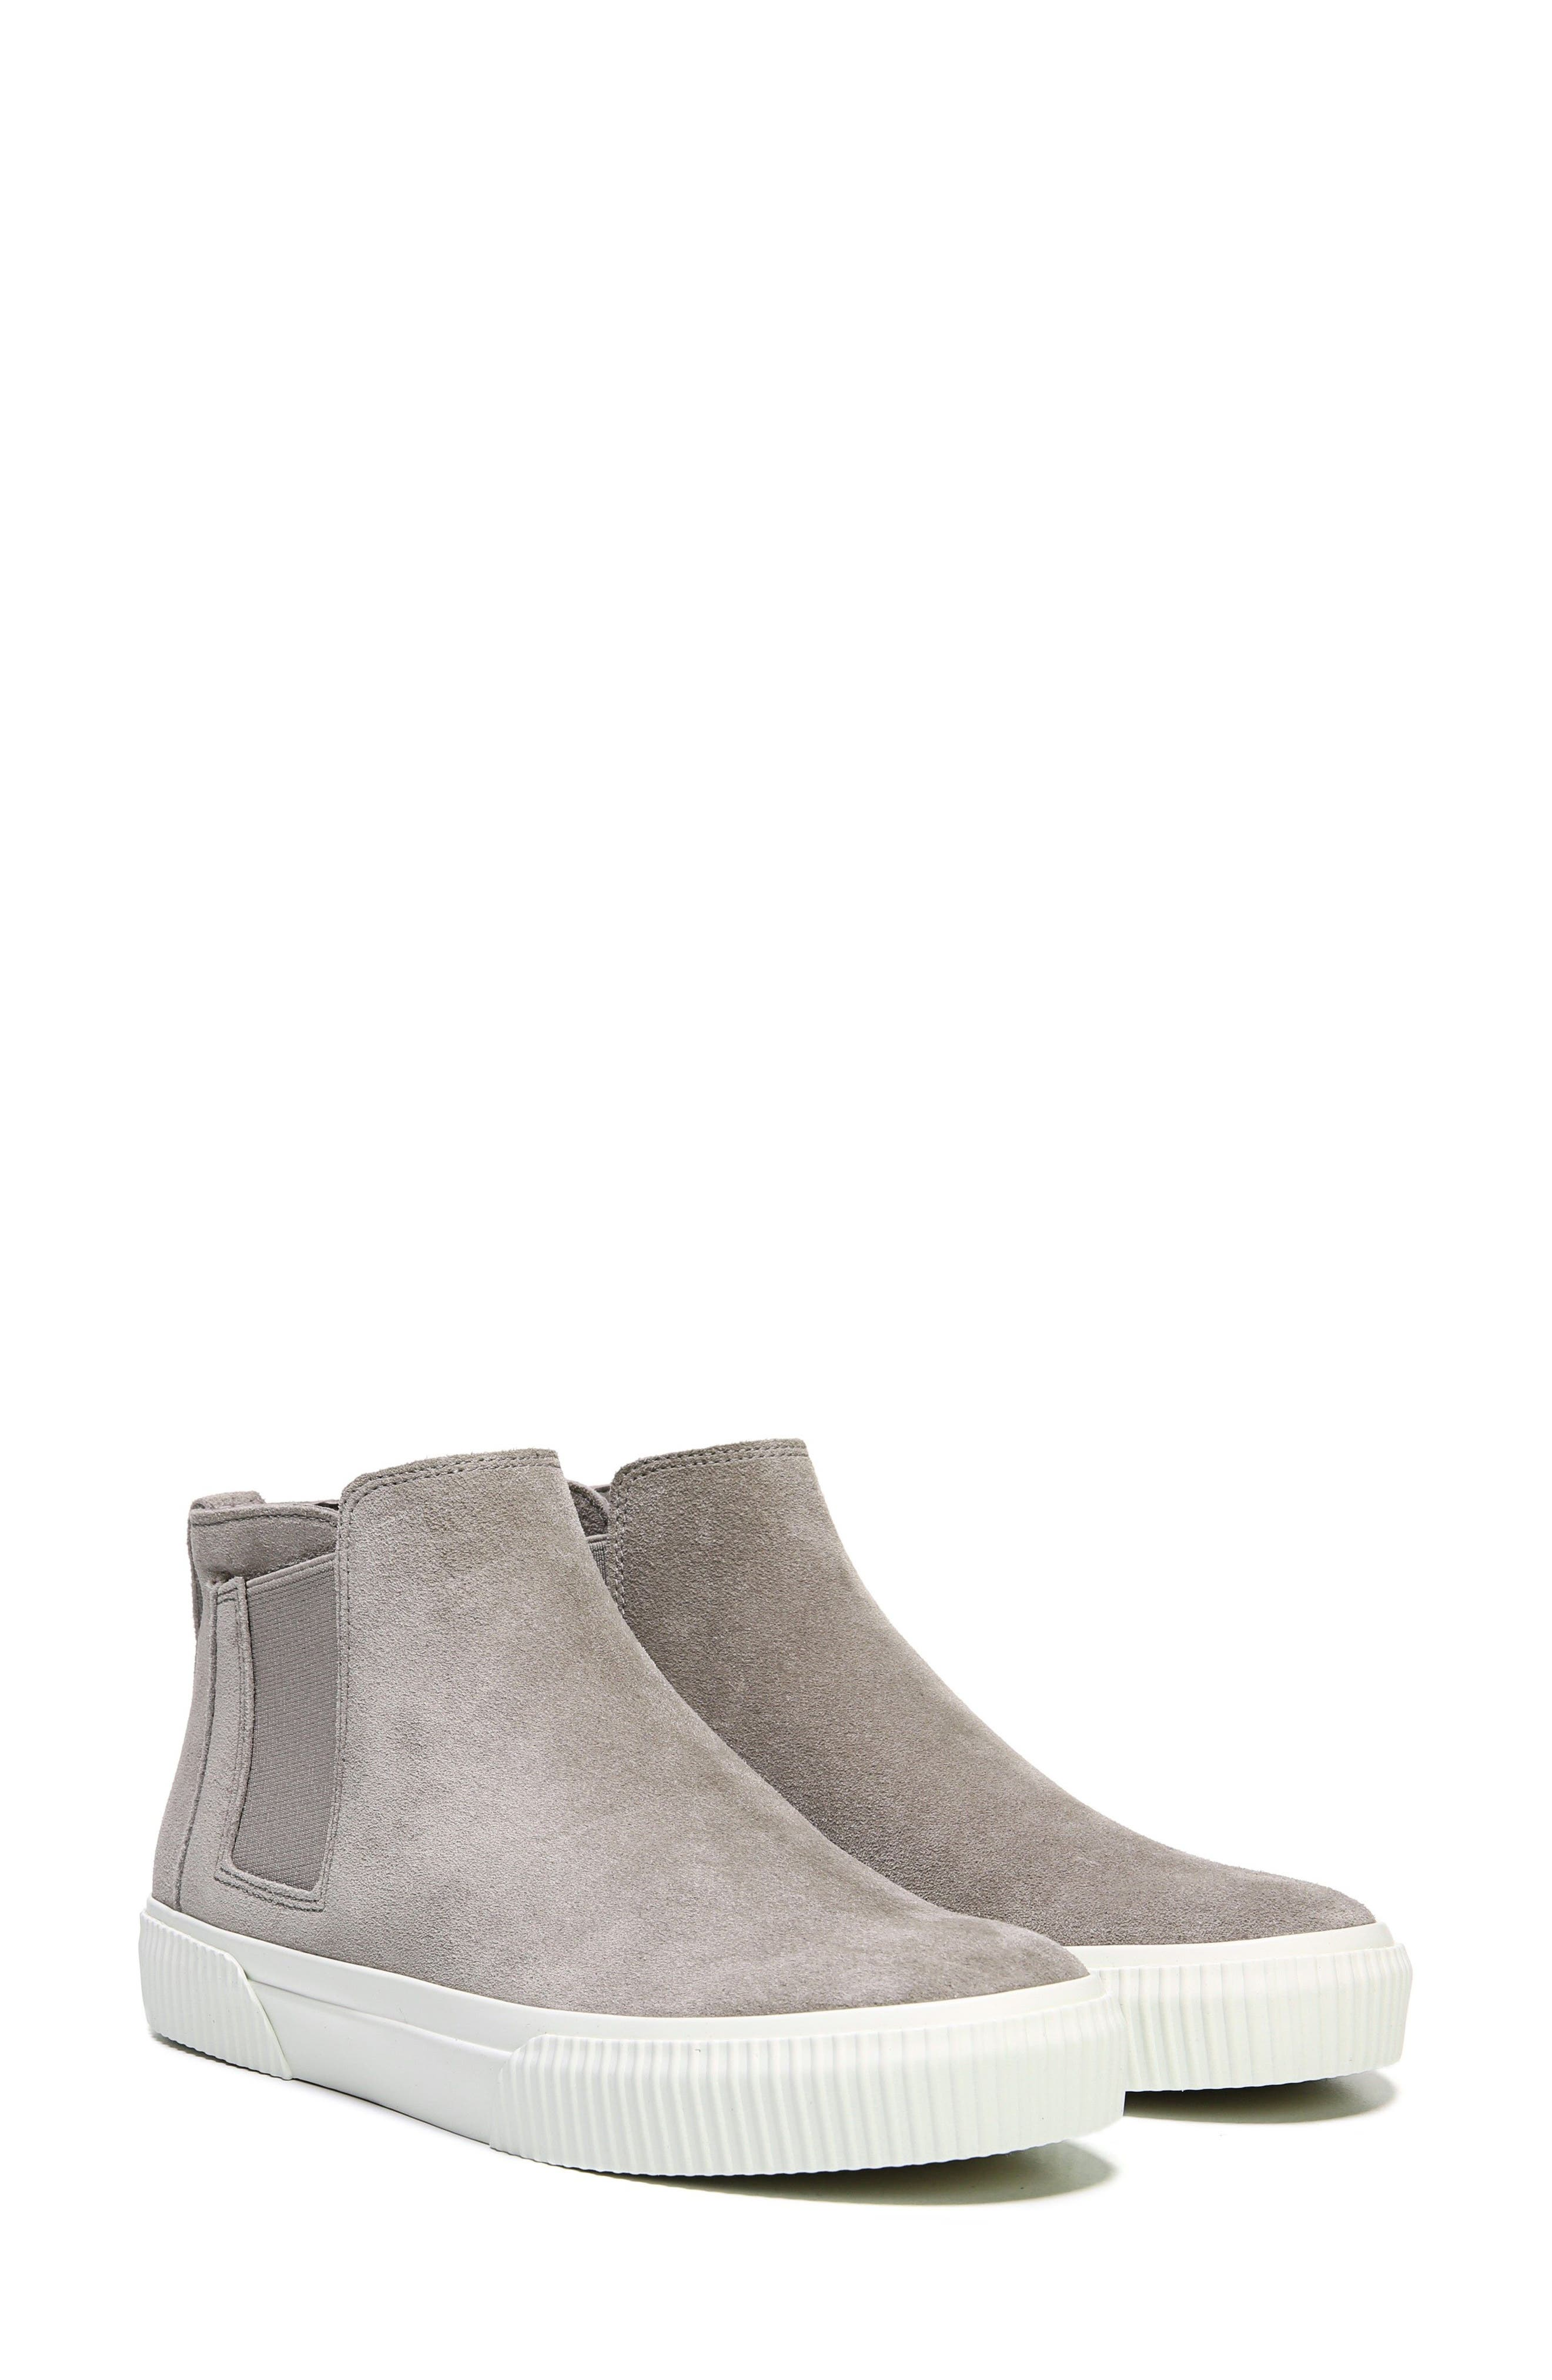 Main Image - Vince Kelowna High Top Chelsea Sneaker (Women)